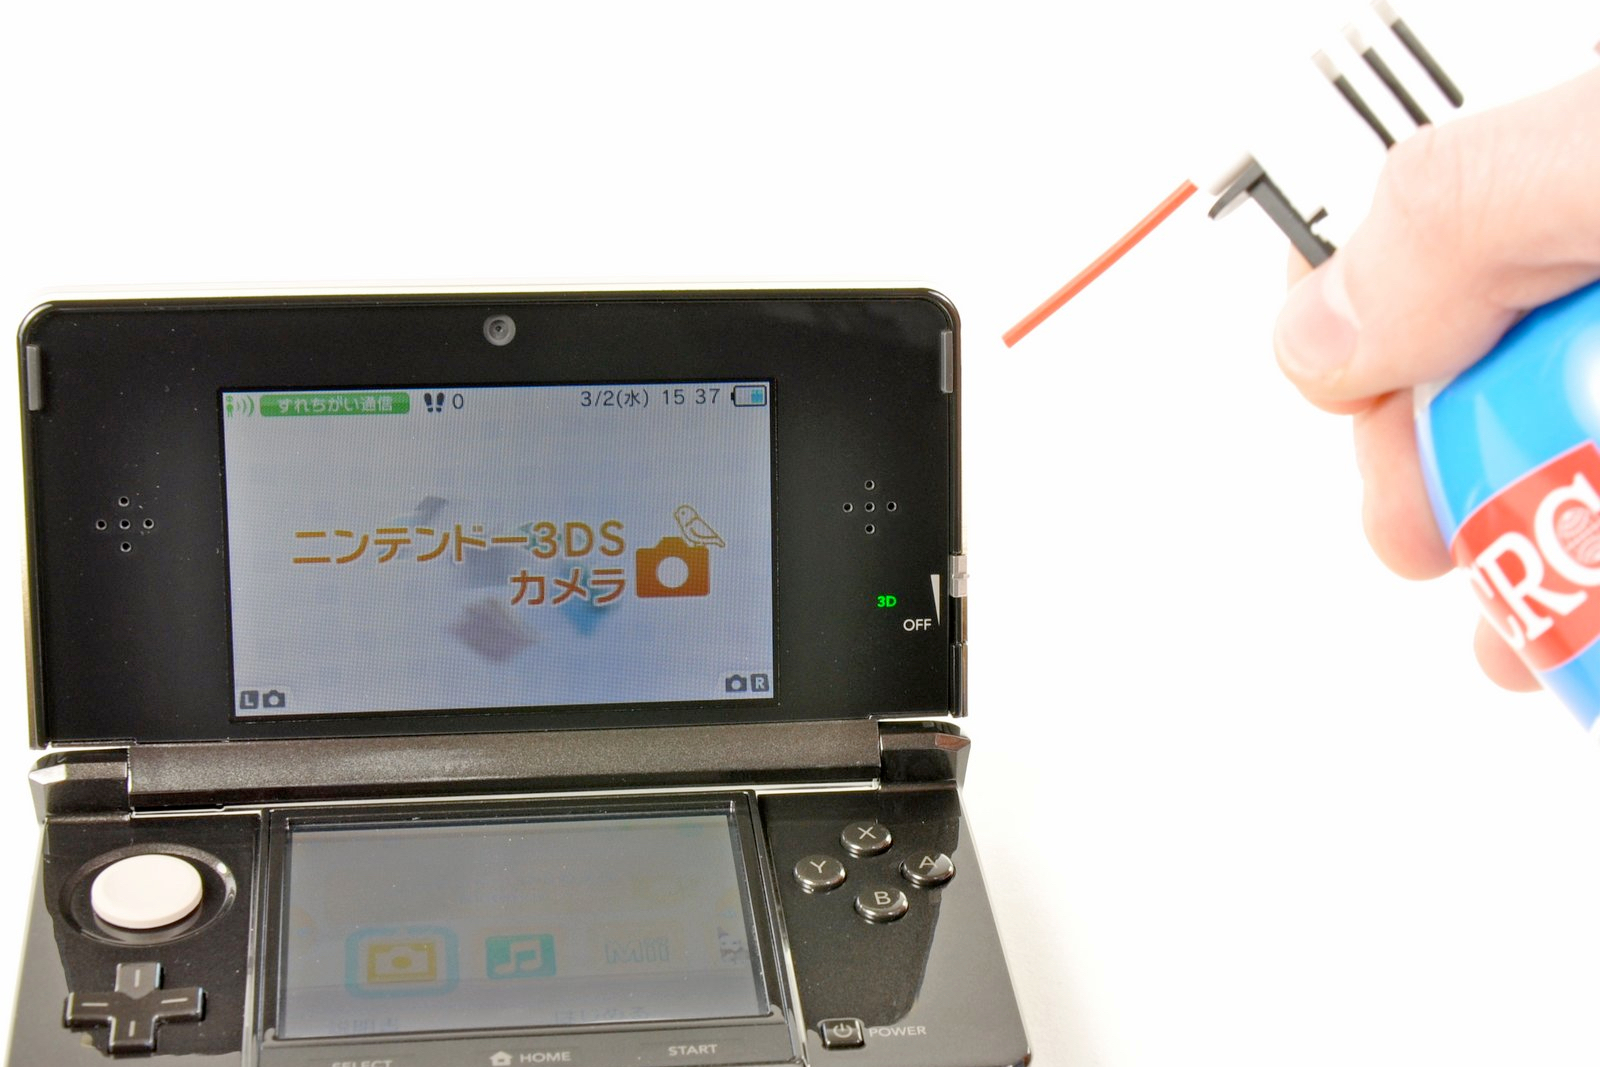 Nintendo 3DS being blasted with compressed air